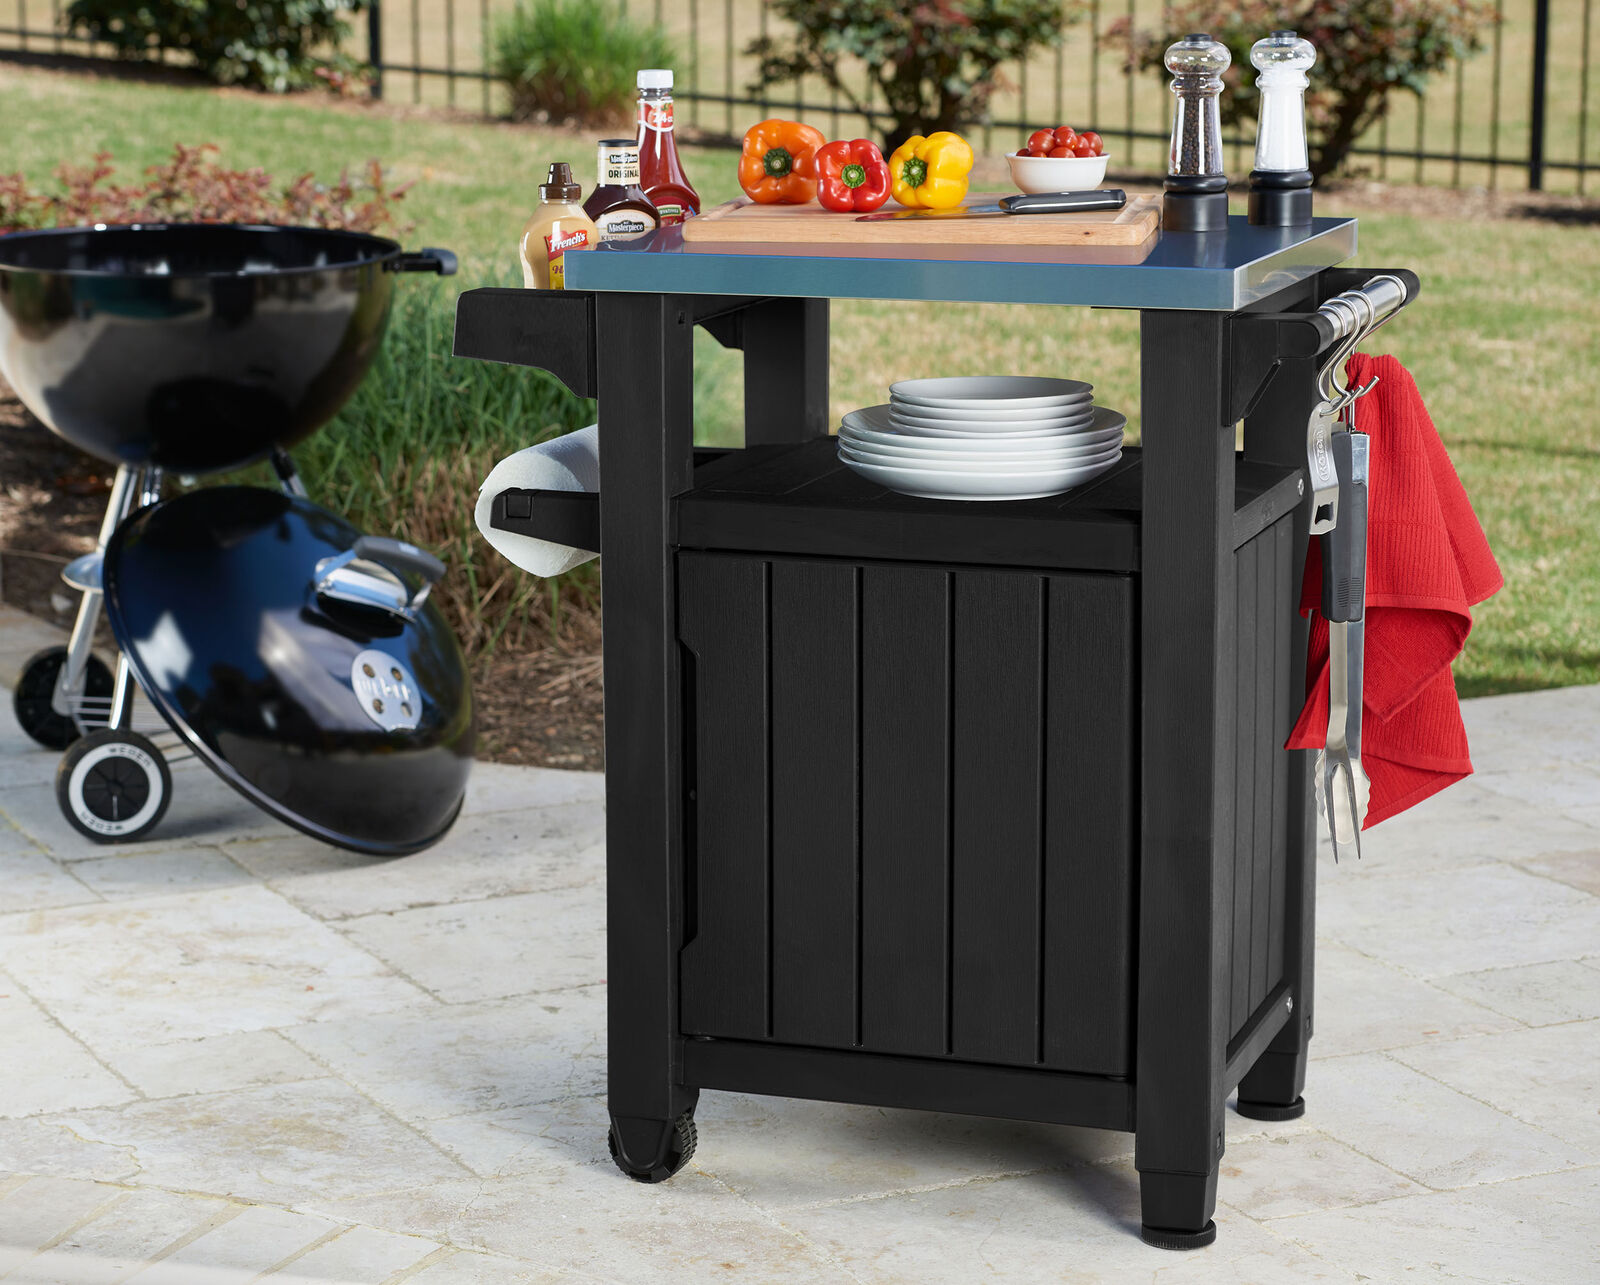 Keter Trolley Plastic Grill Cart Coffee Table Grill serviertisch